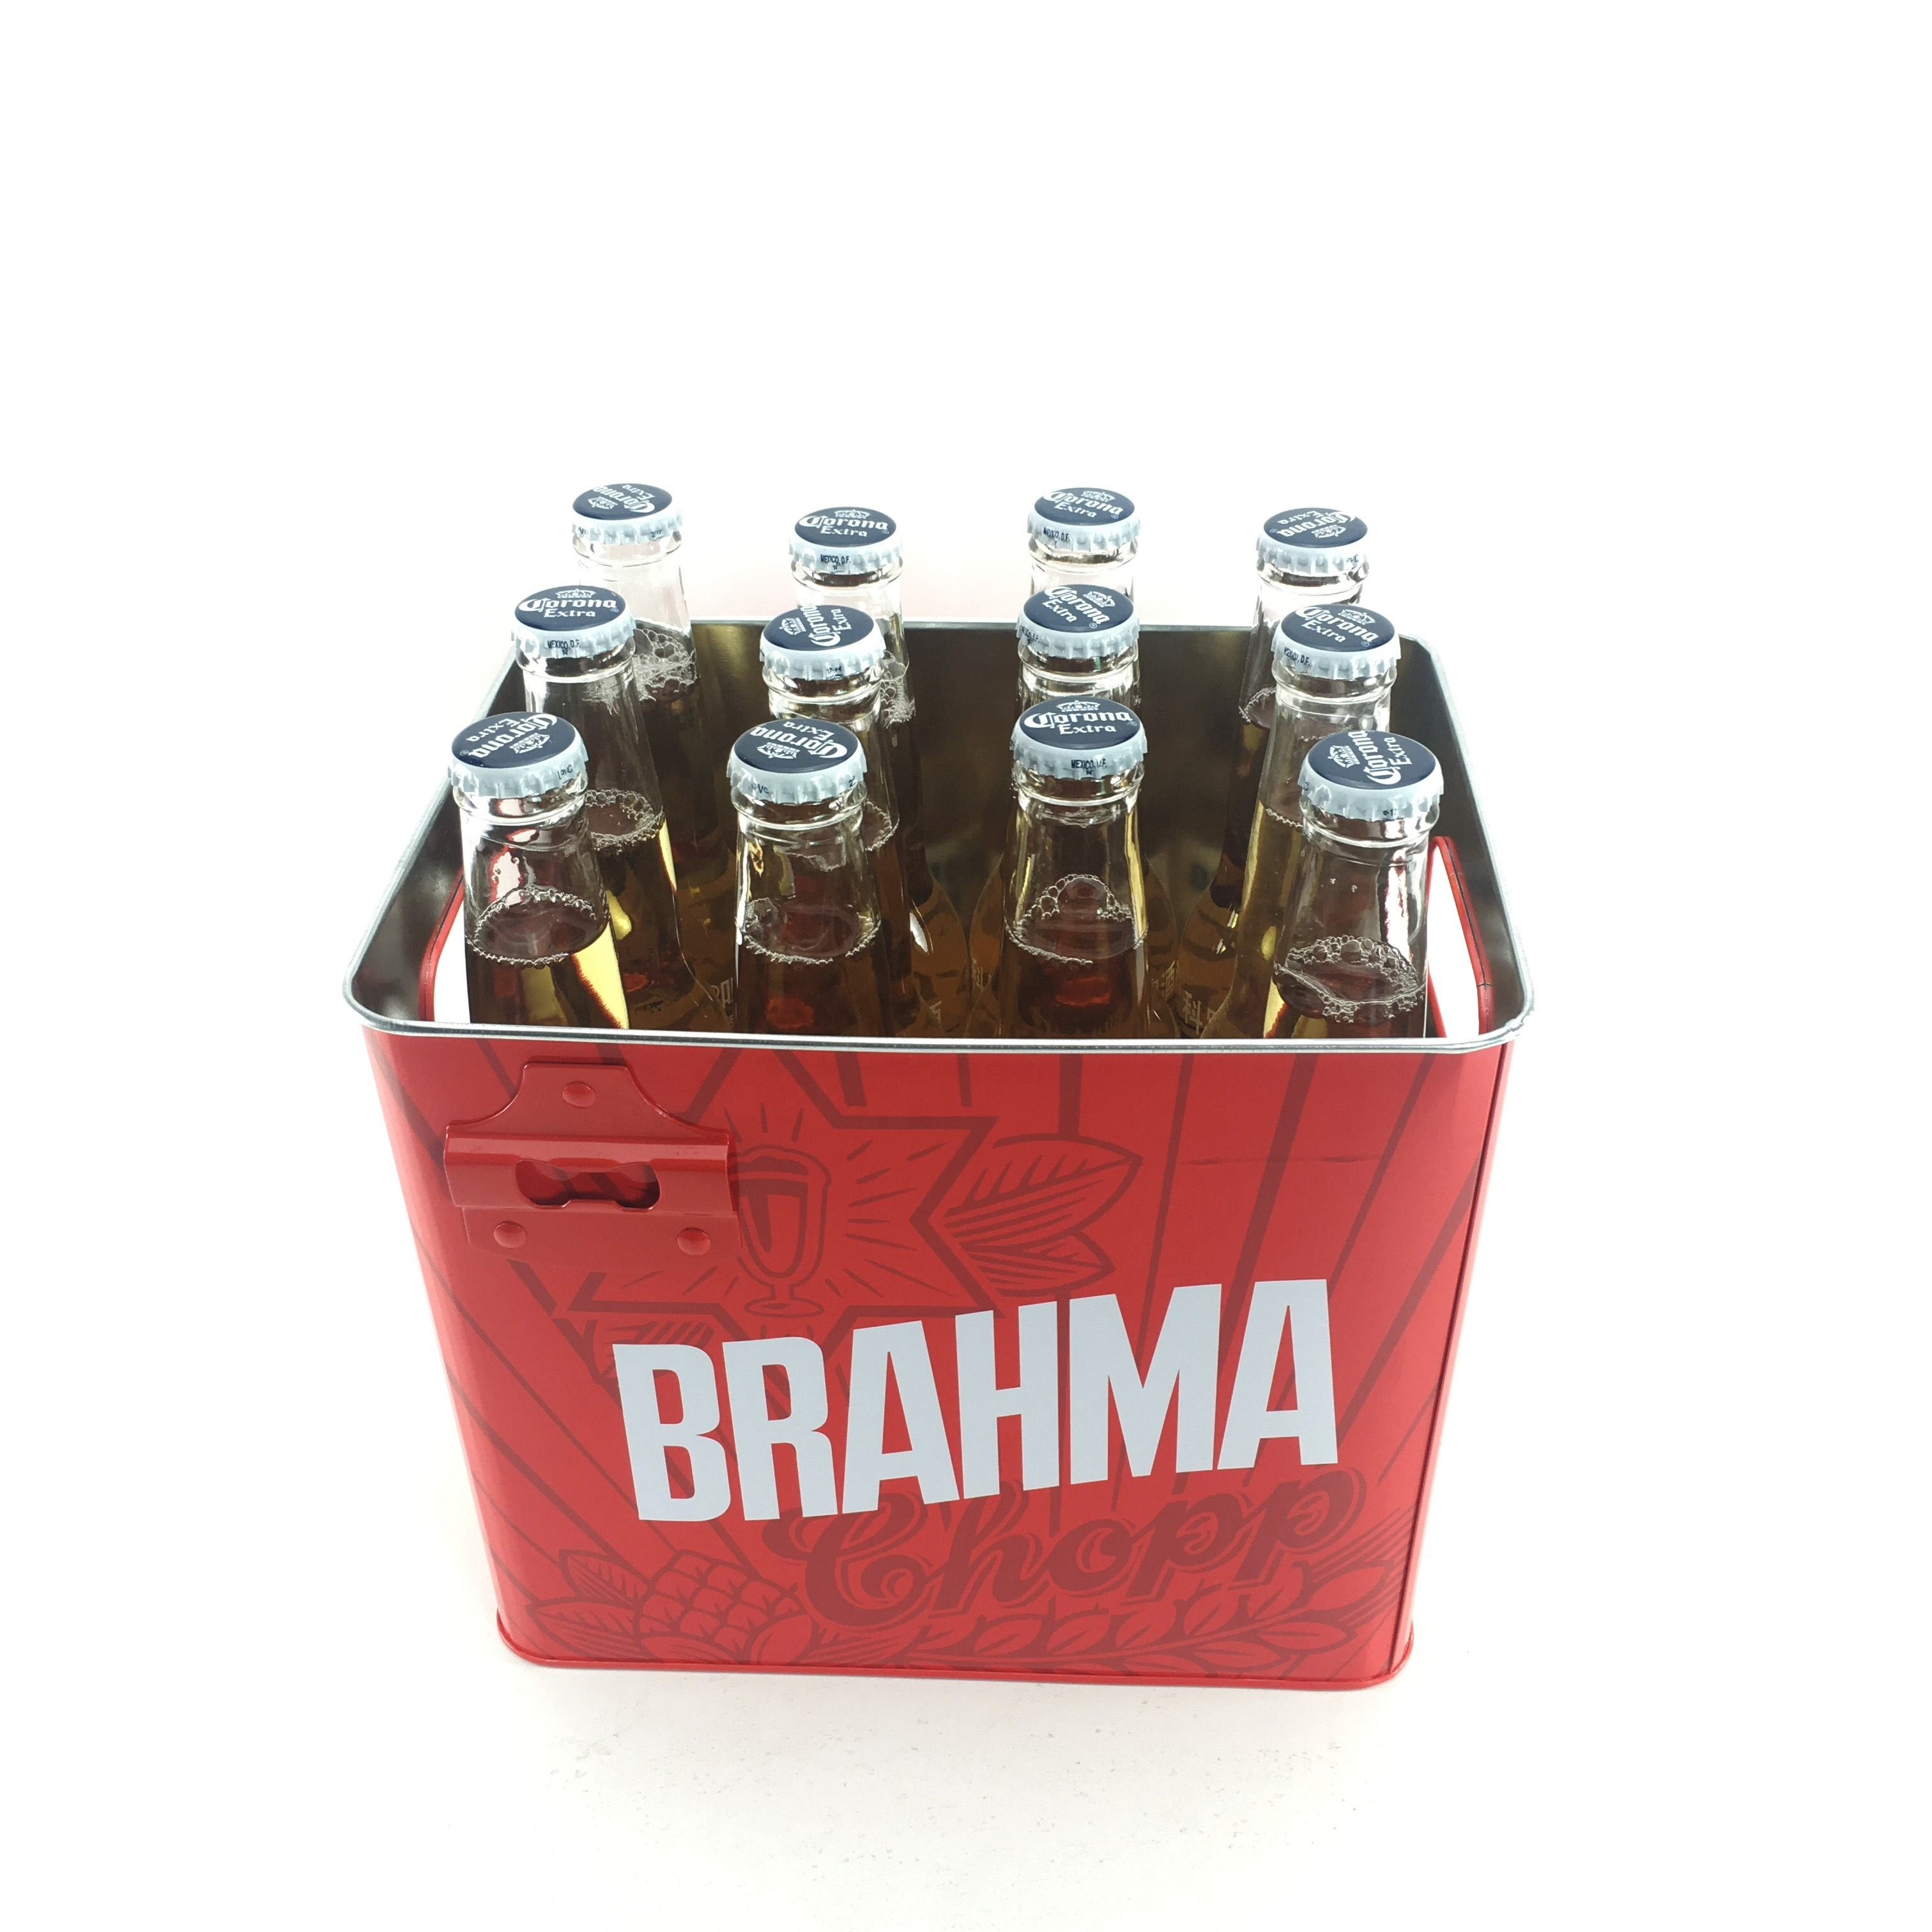 Custom Stock 10L Round Metal Galvanized Ice Bucket with Bottle Opener and Handle for 12 Bottles of Beer Champagne